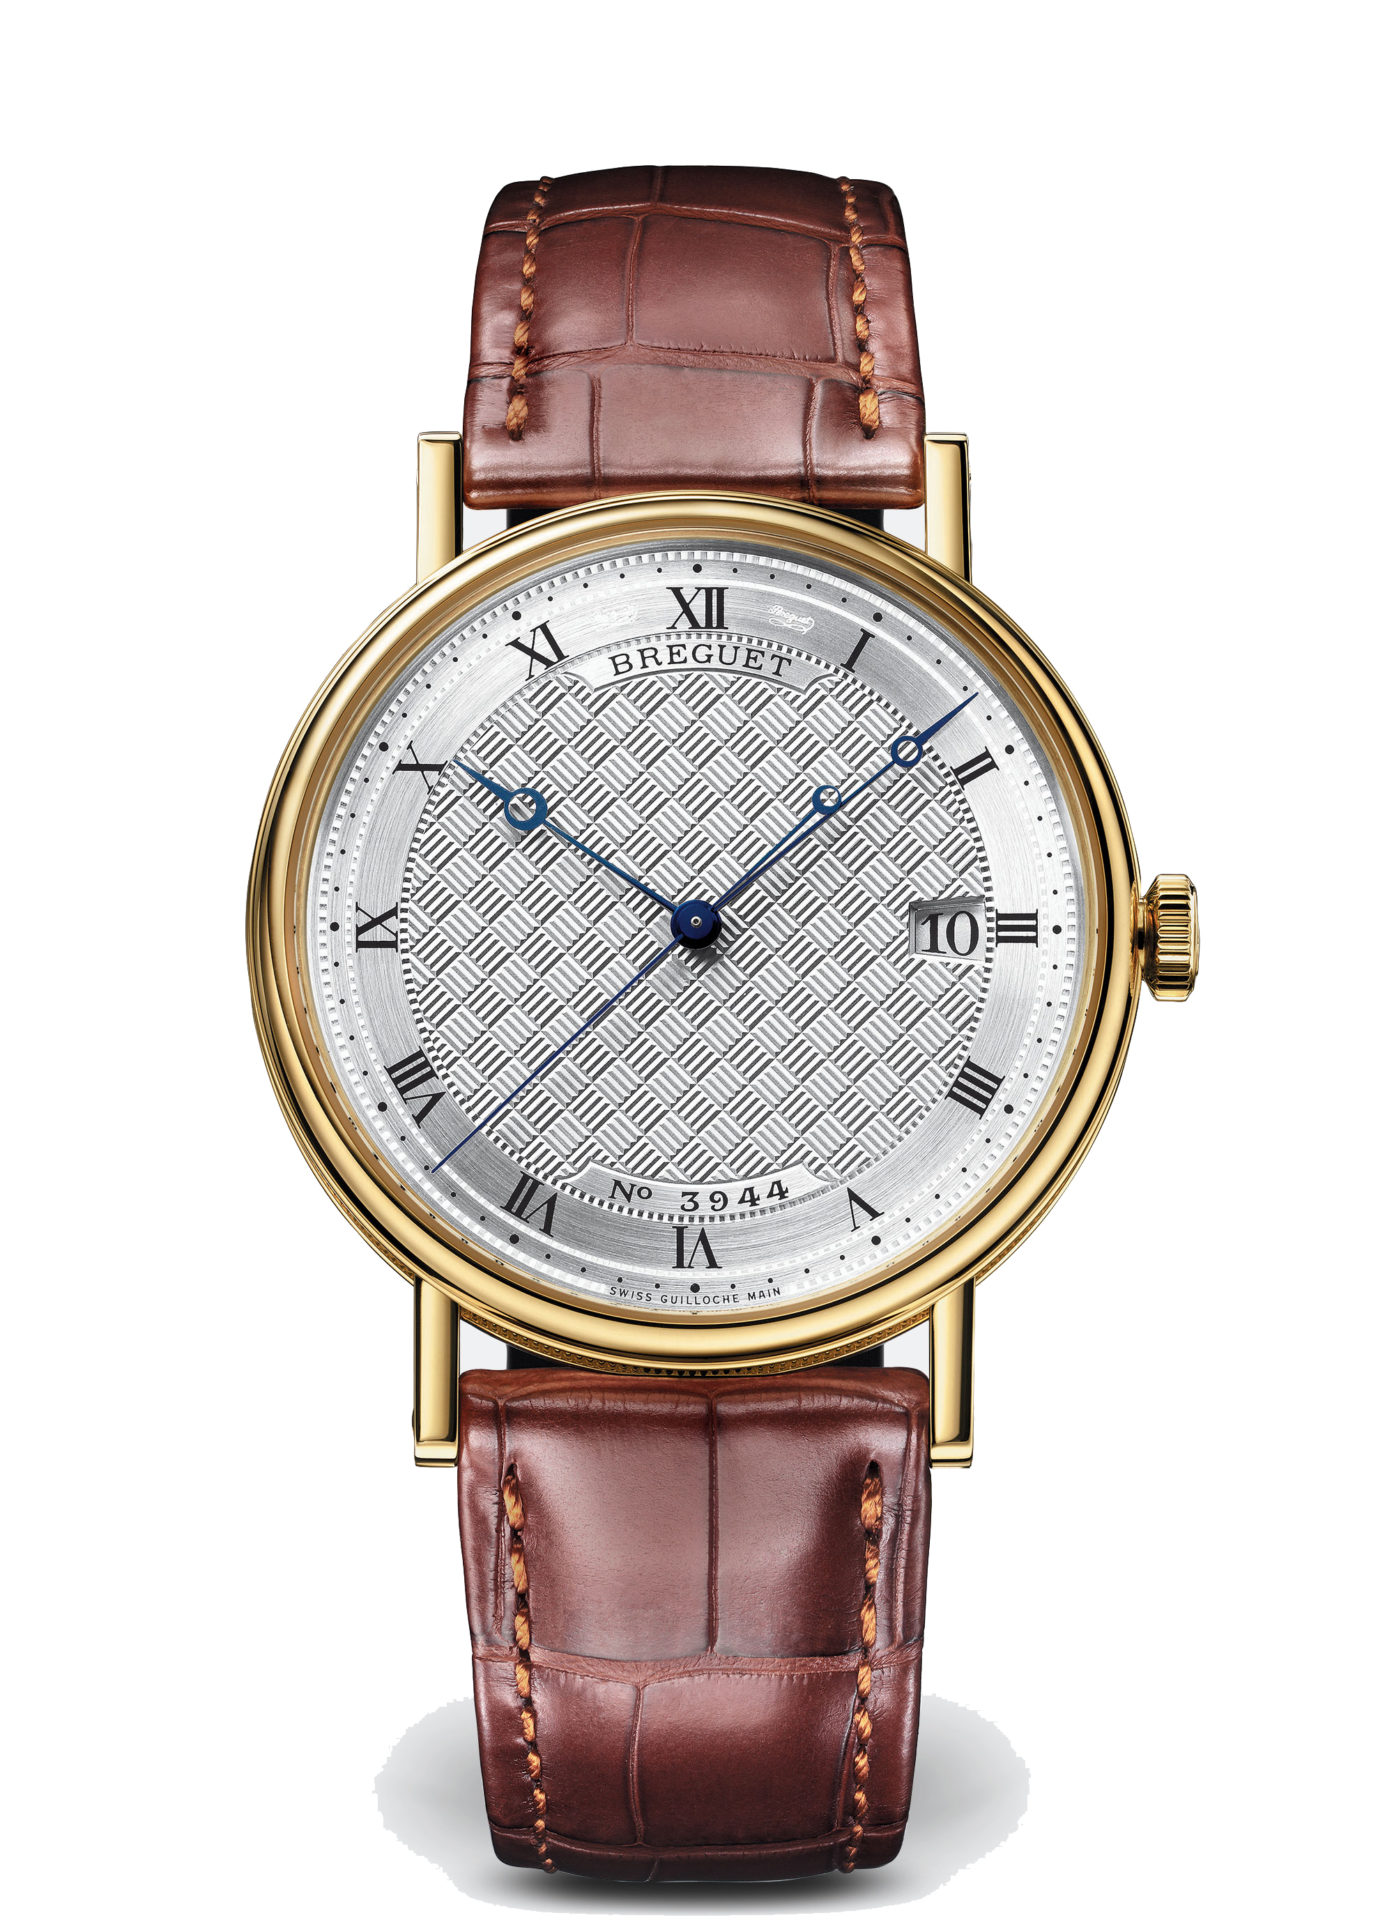 Breguet-Classique-5177-Hall-of-Time-5177ba-12-9v6 copie